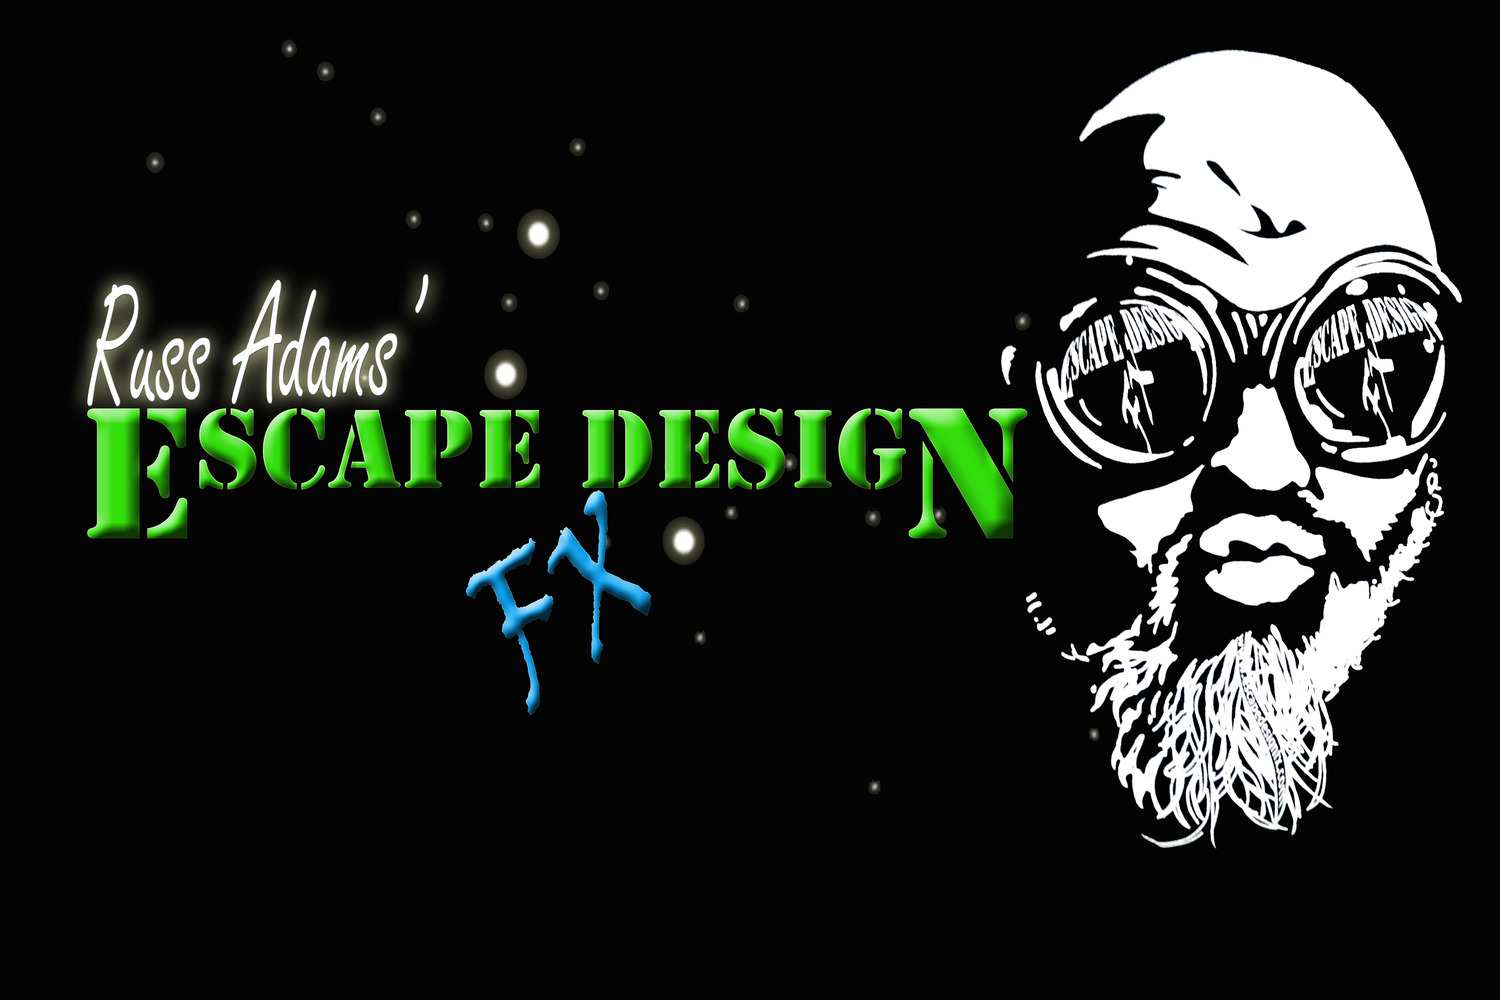 Escape Design FX